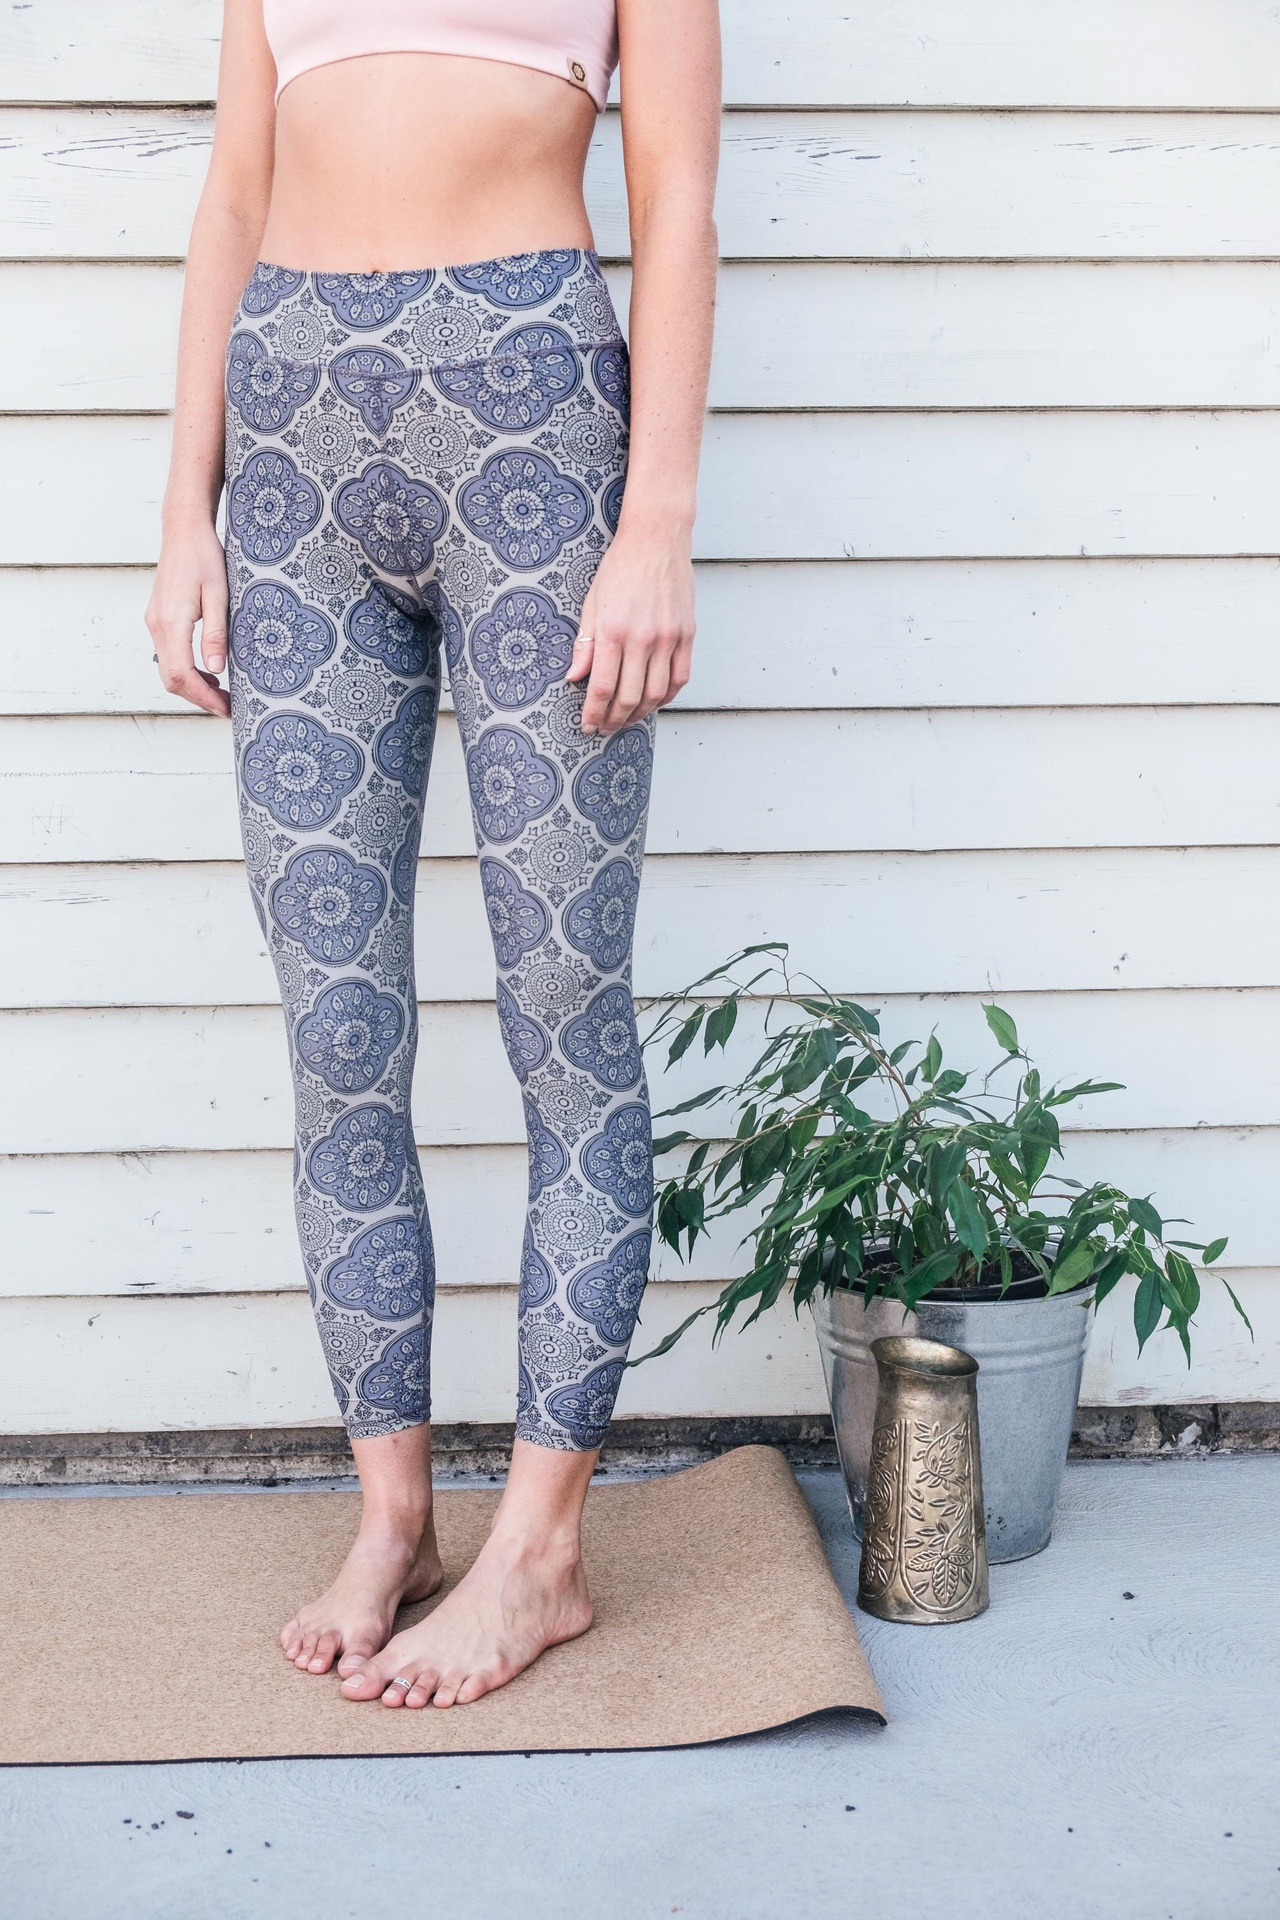 44529a698d99 Prana Leggings Mandala - Natural Harry